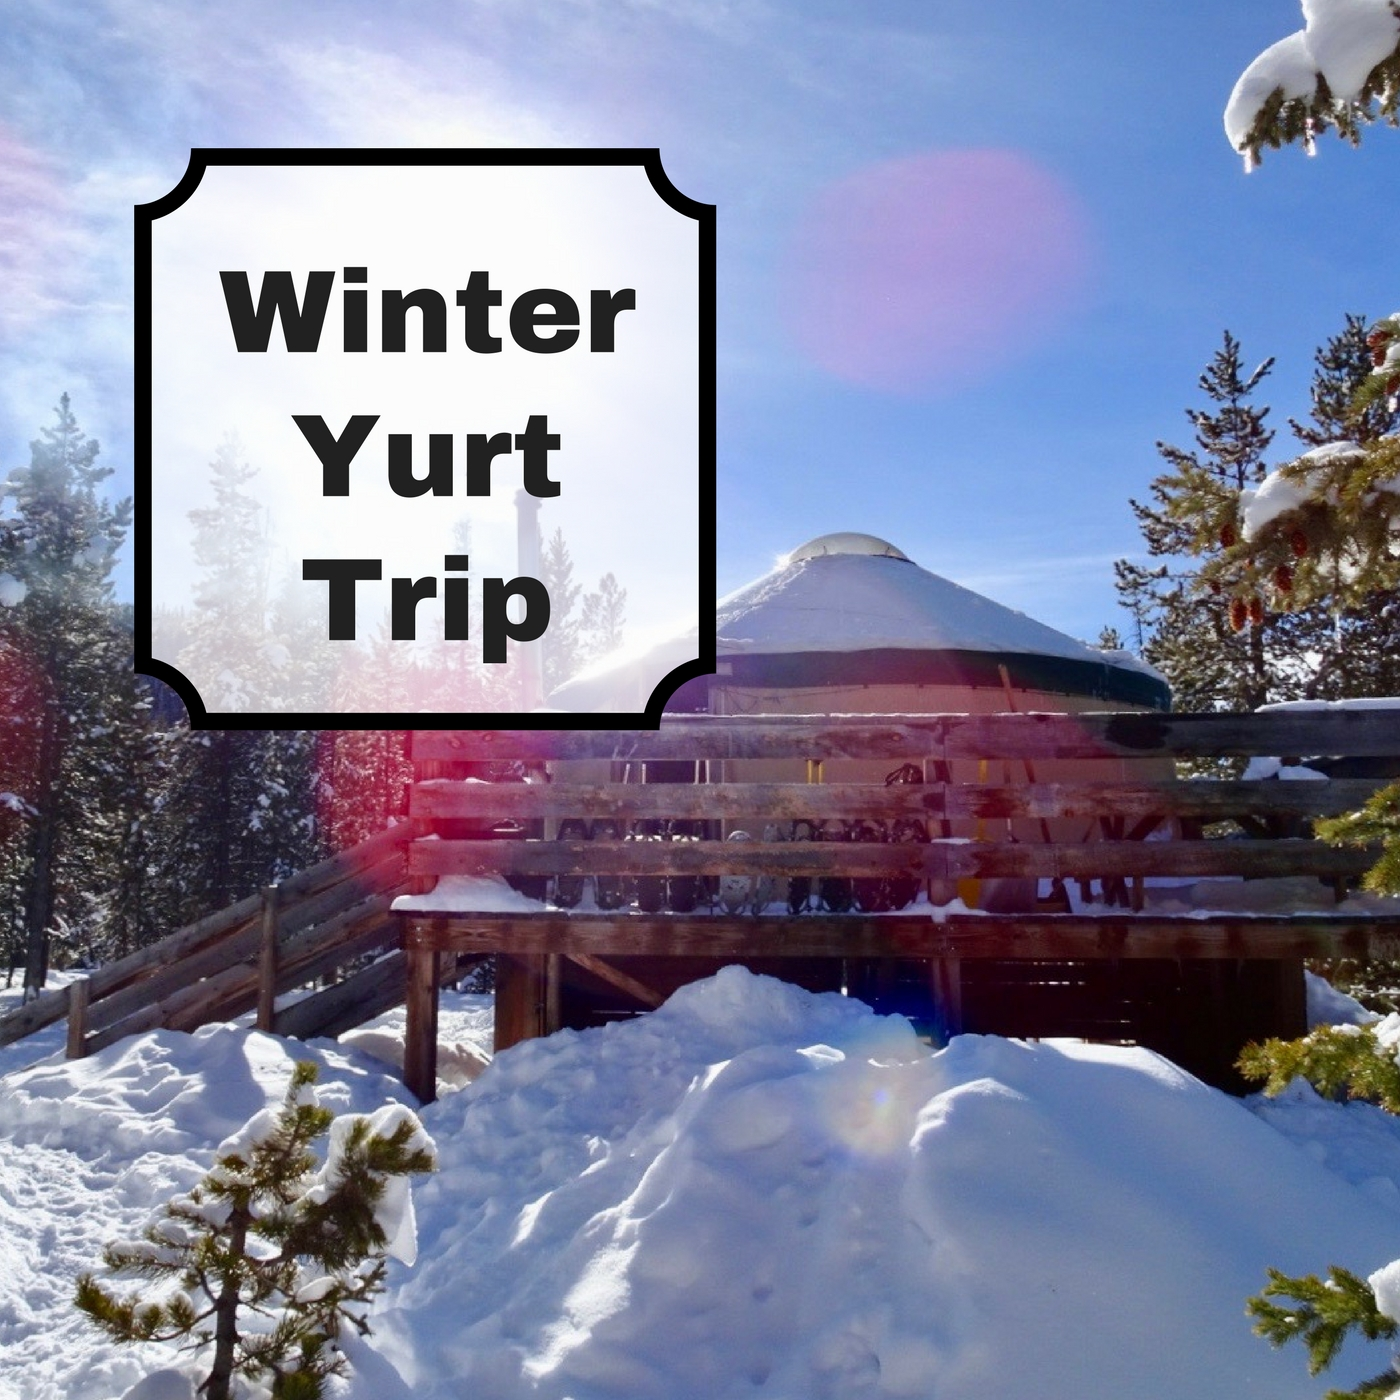 Winter Yurt Trip